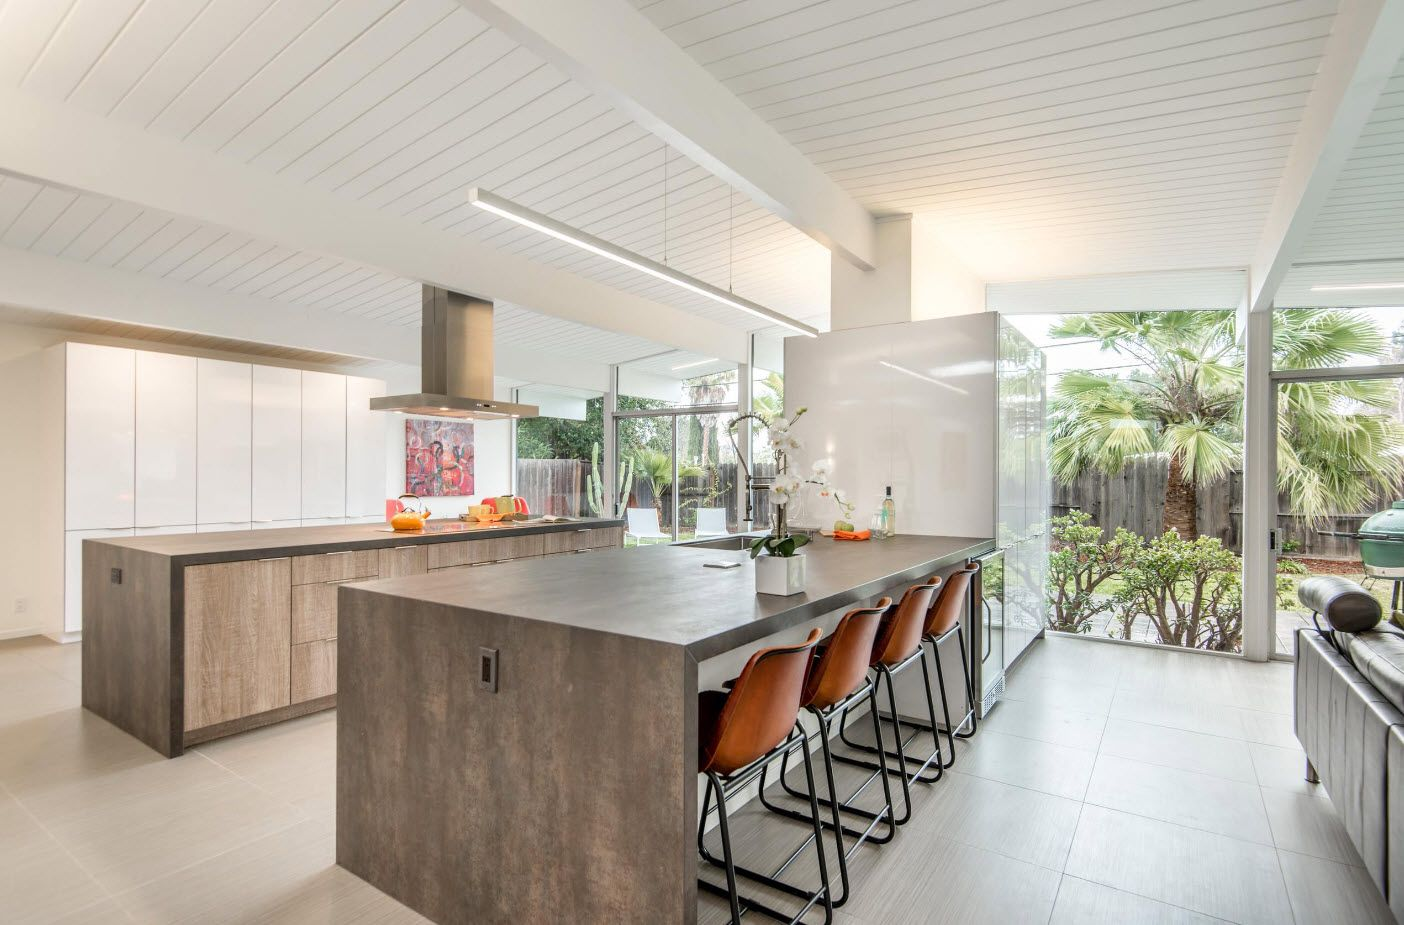 Gorgeous modern design of the large kitchen space at the first floor of the kitchen